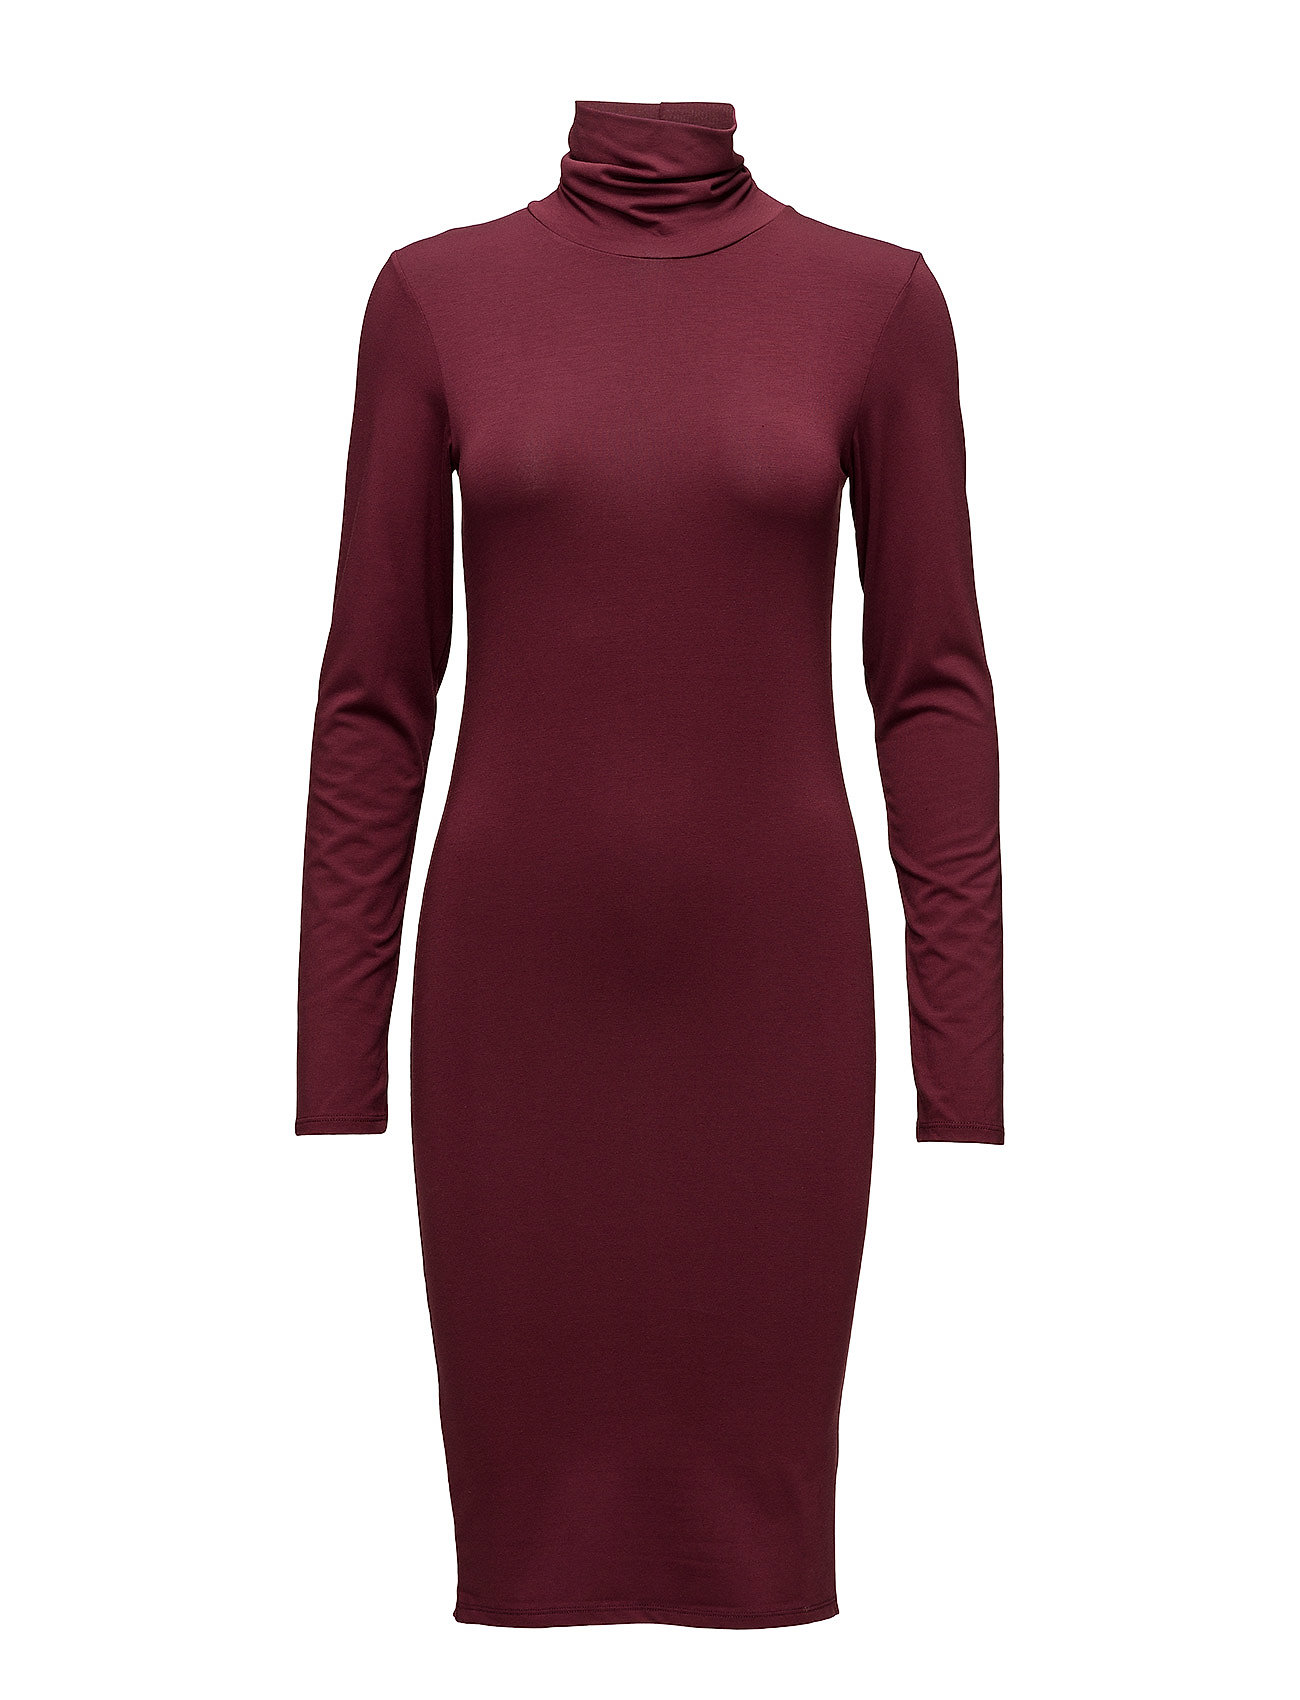 Modström Tanner dress - WINE RED